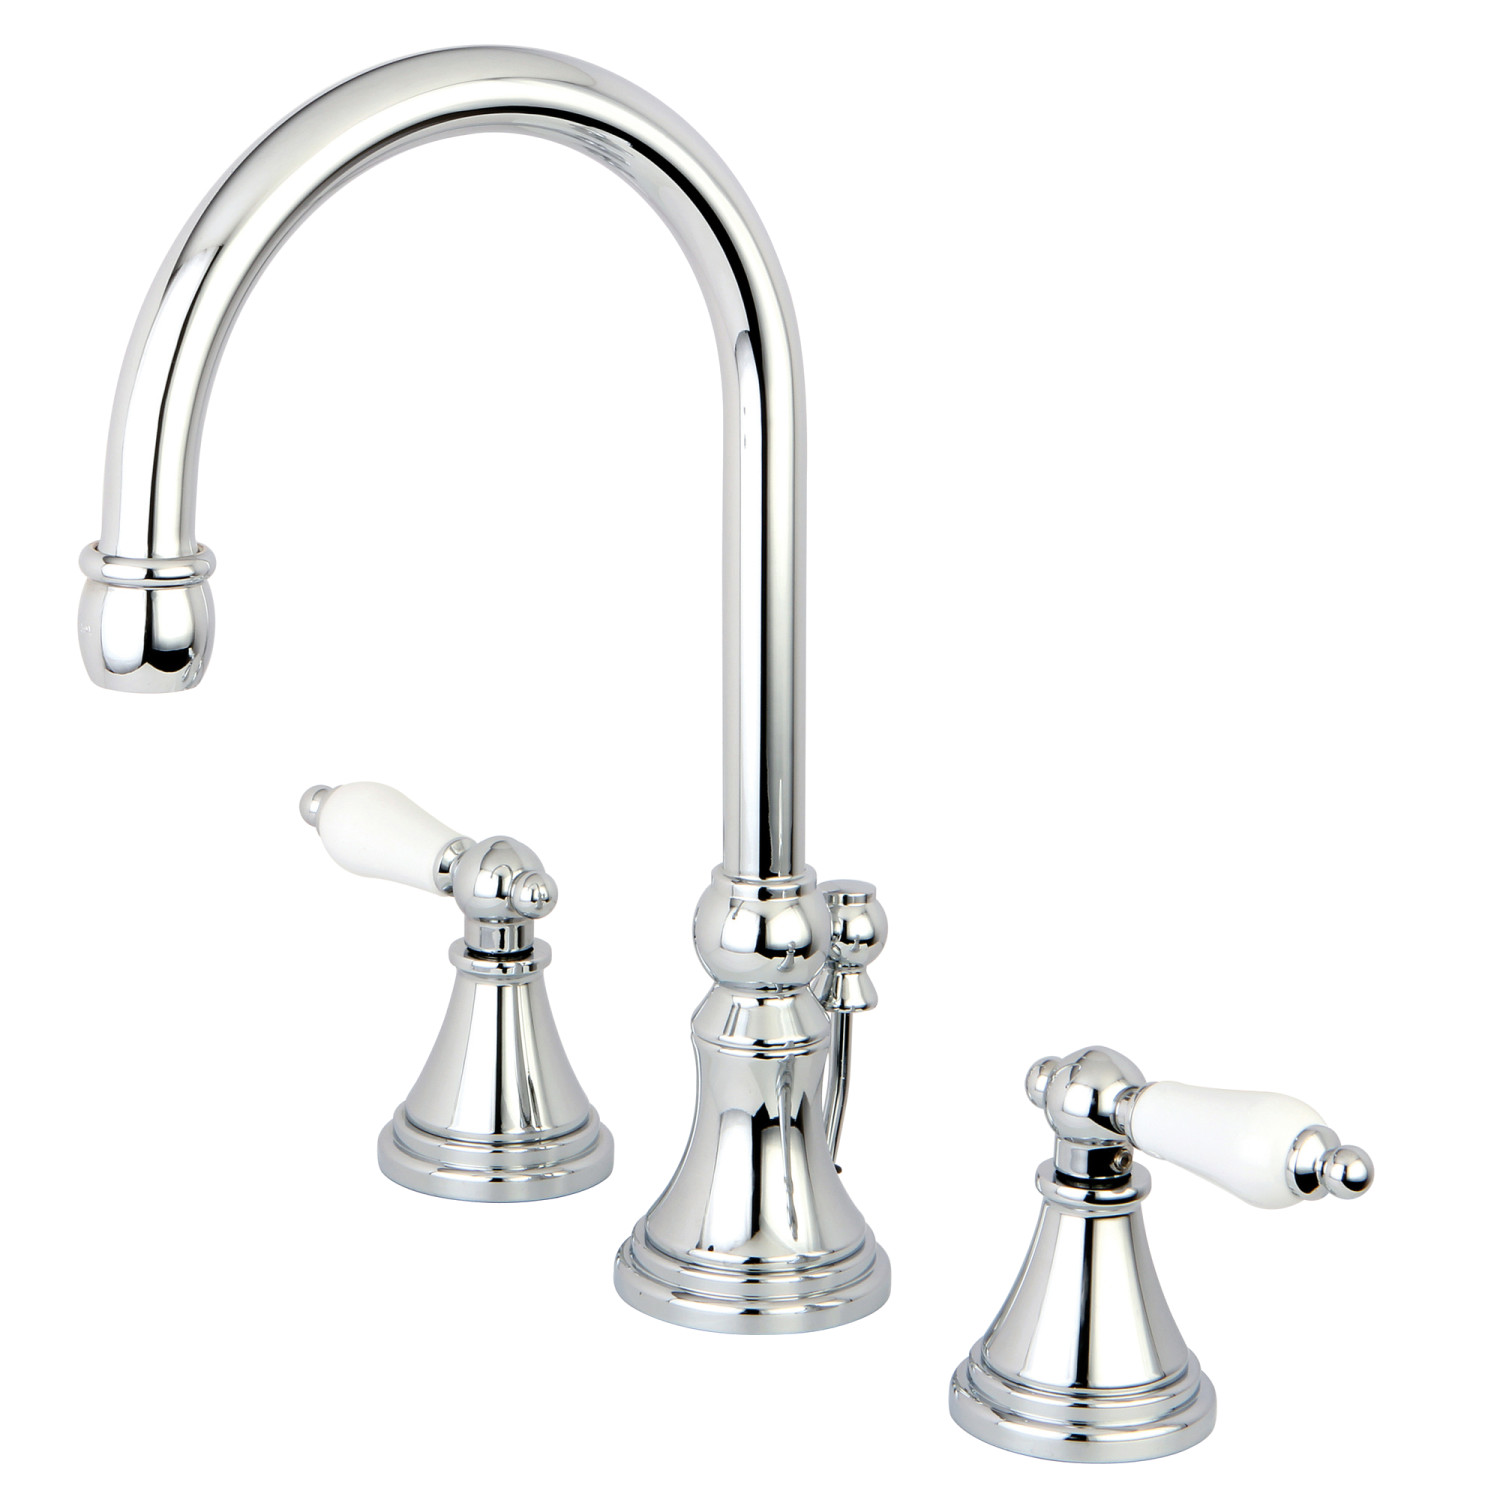 Traditional Dual Lever Handle Three-Hole Deck Mounted Widespread Bathroom Faucet with Brass Pop-Up in Polished Chrome